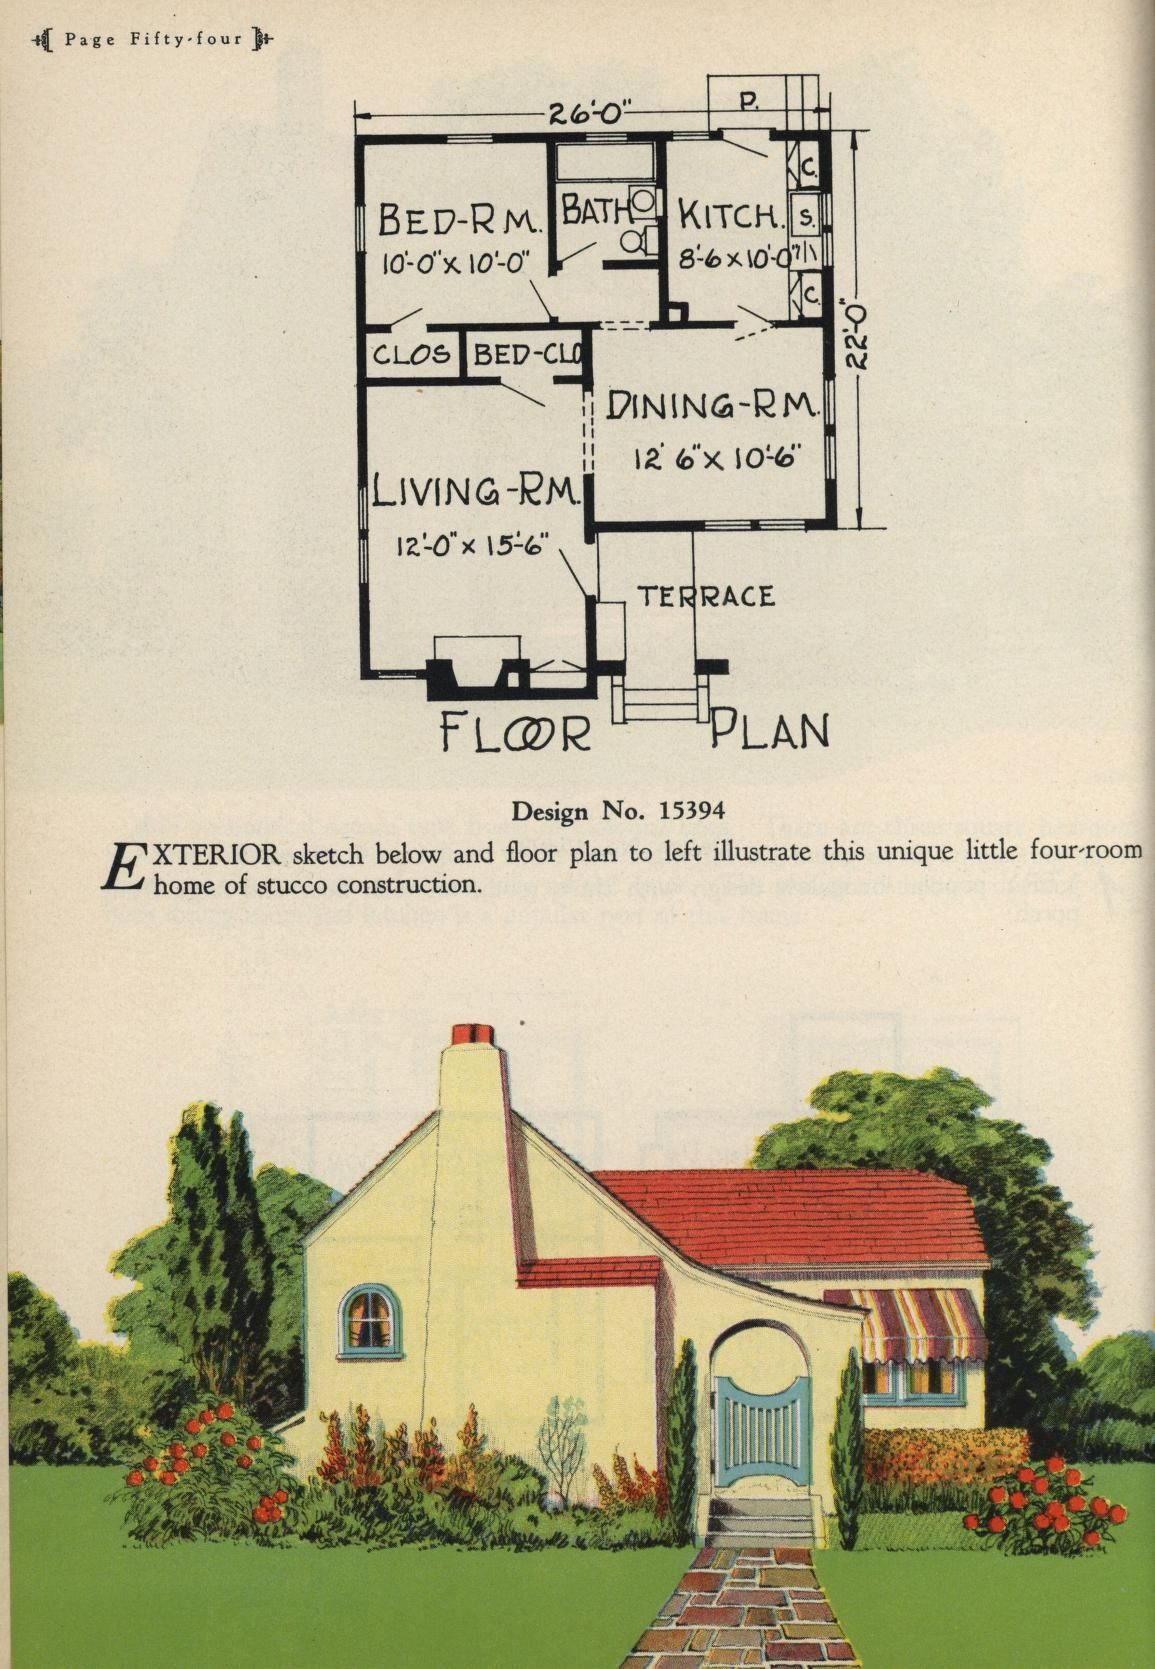 Artistic Homes Build A Home First Vintage House Plans Building A House Lake Worth Florida